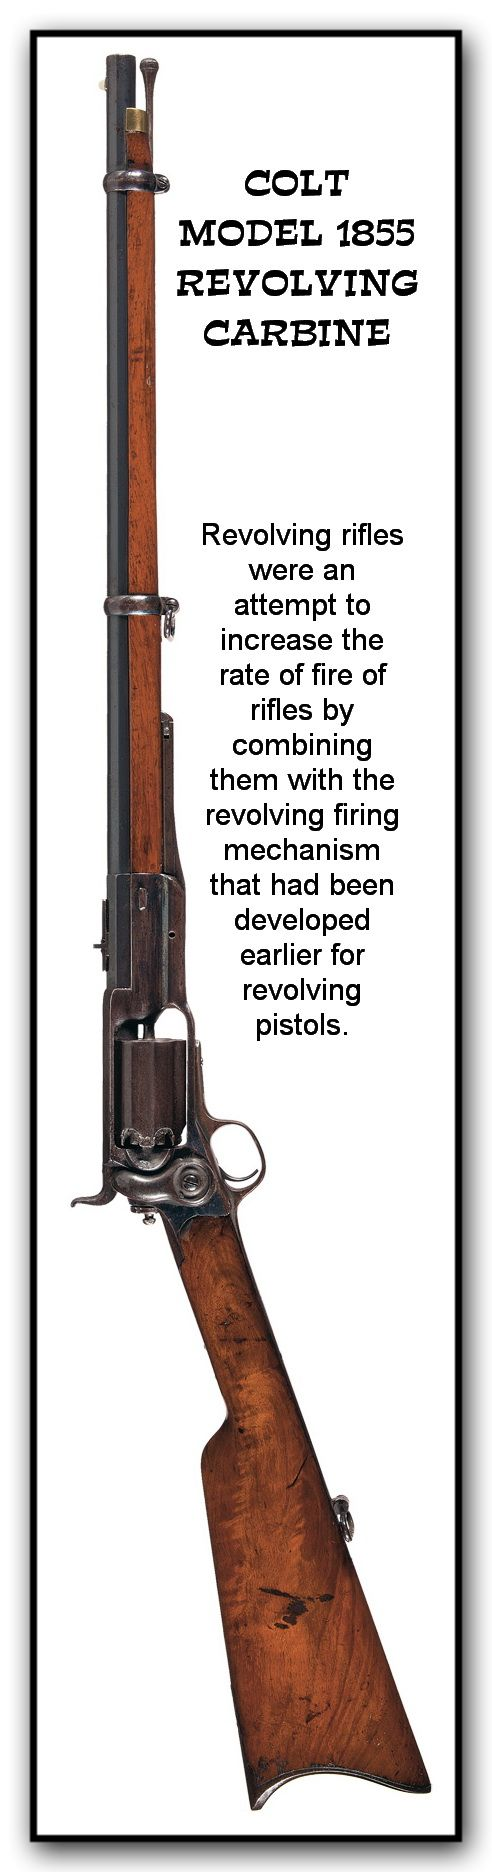 The most widely produced revolving rifle was the Model 1855. An estimated total of only 4,435 were manufactured in the Hartford factory c. 1856–1864.  This was produced in a rifle version as well as a shortened carbine. In 1855 it became the first repeating rifle to be adopted for service by the U.S. Military. The Colt revolving rifle saw limited use in the early west.